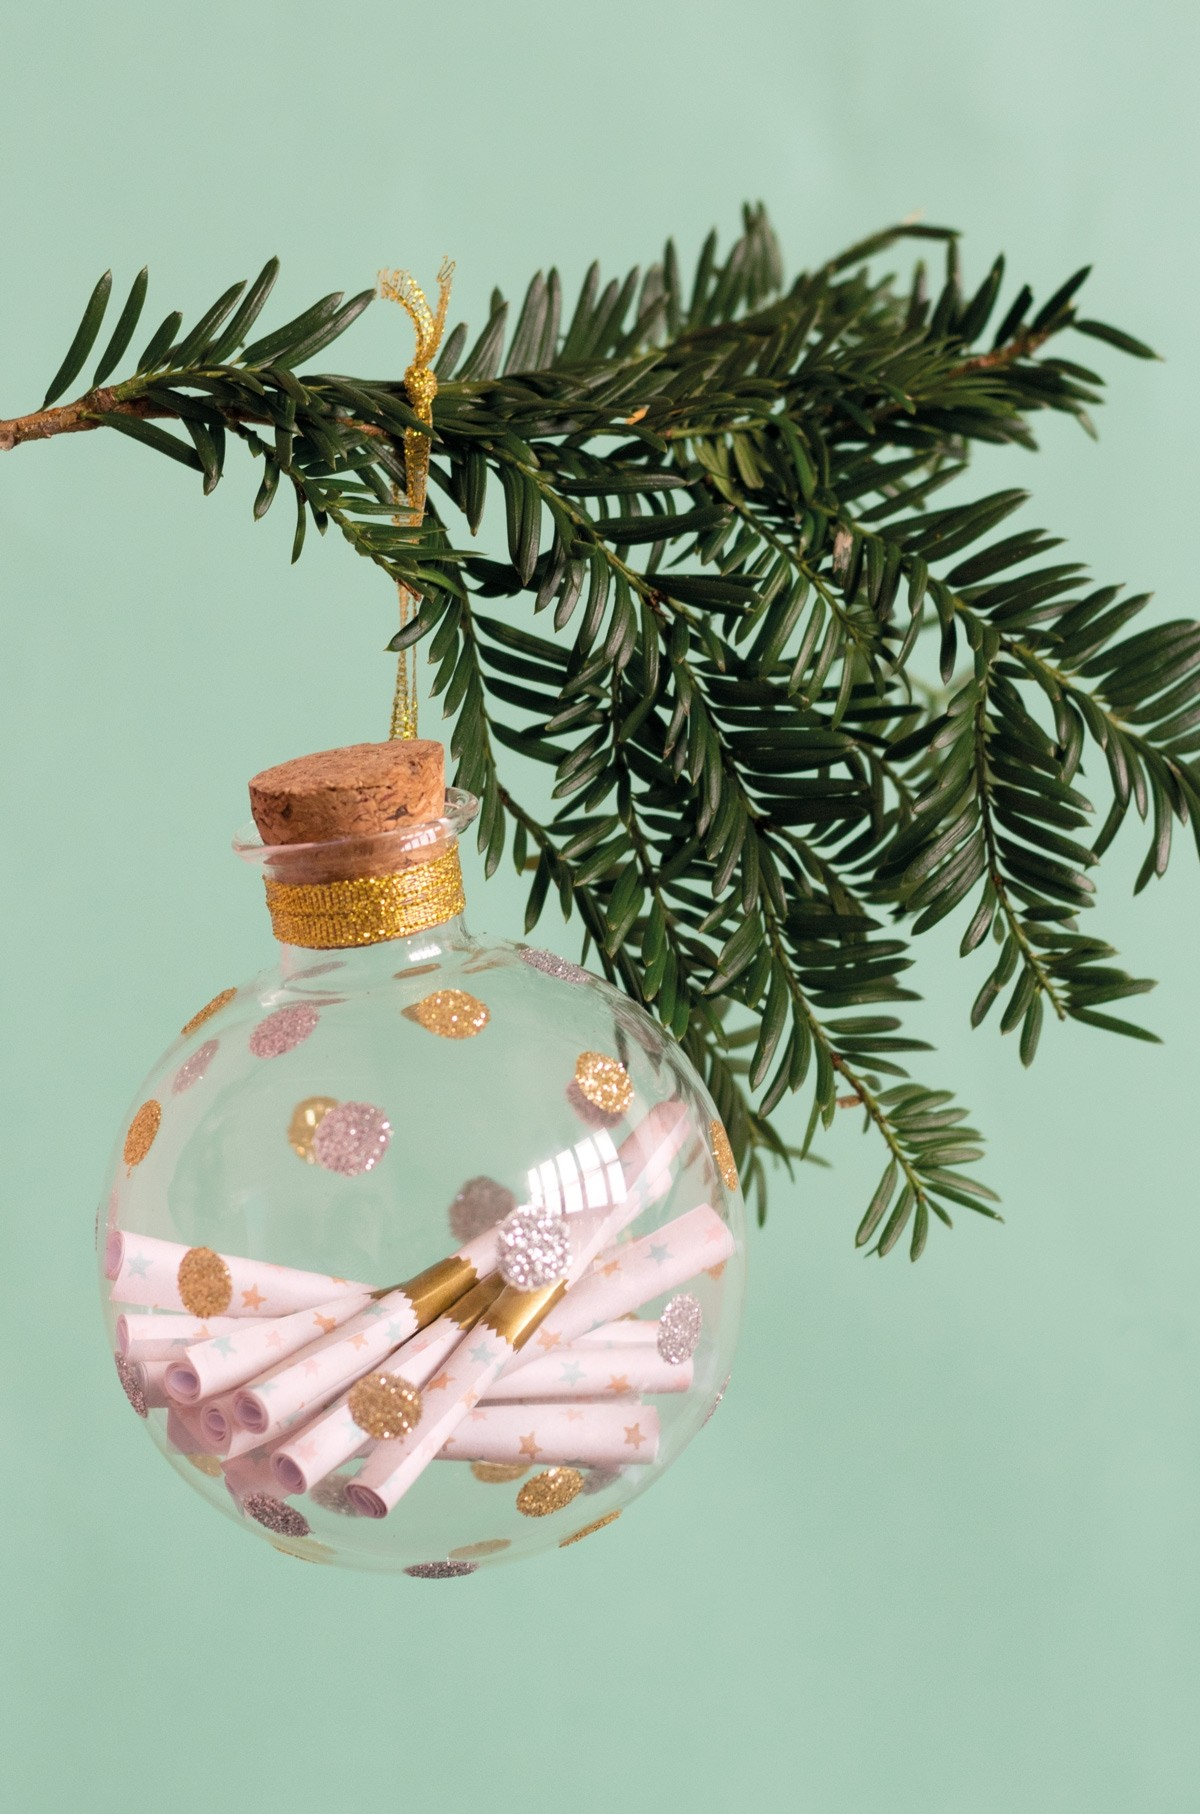 This Christmas ornament for new parents preserves memories so sweetly